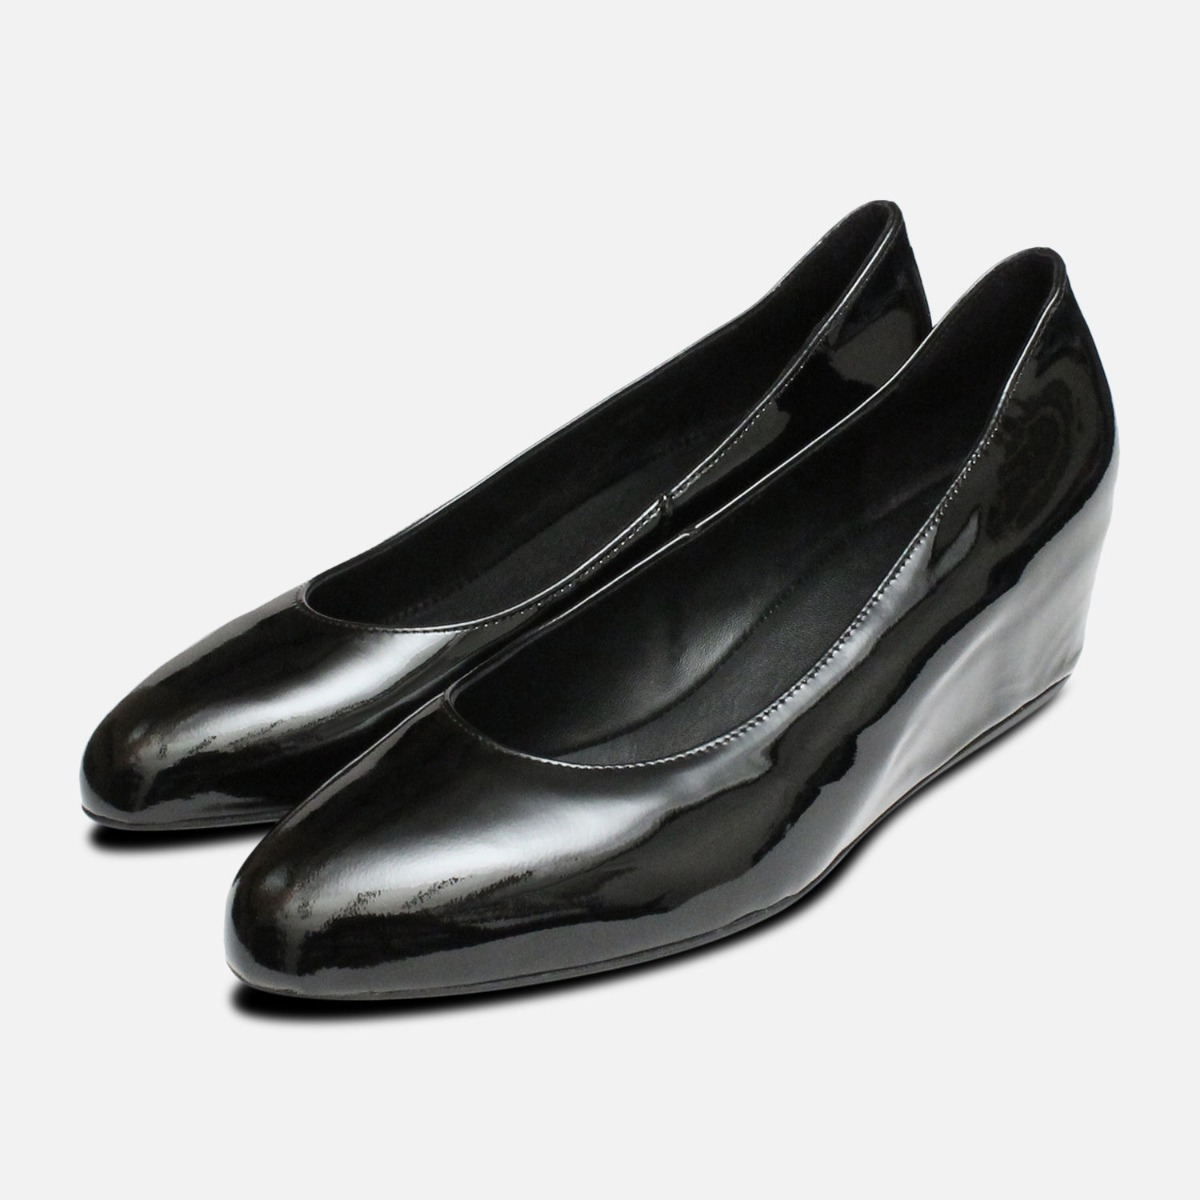 3b208ed220a Details about Hogl Black Patent Covered Wedge Ladies Shoes